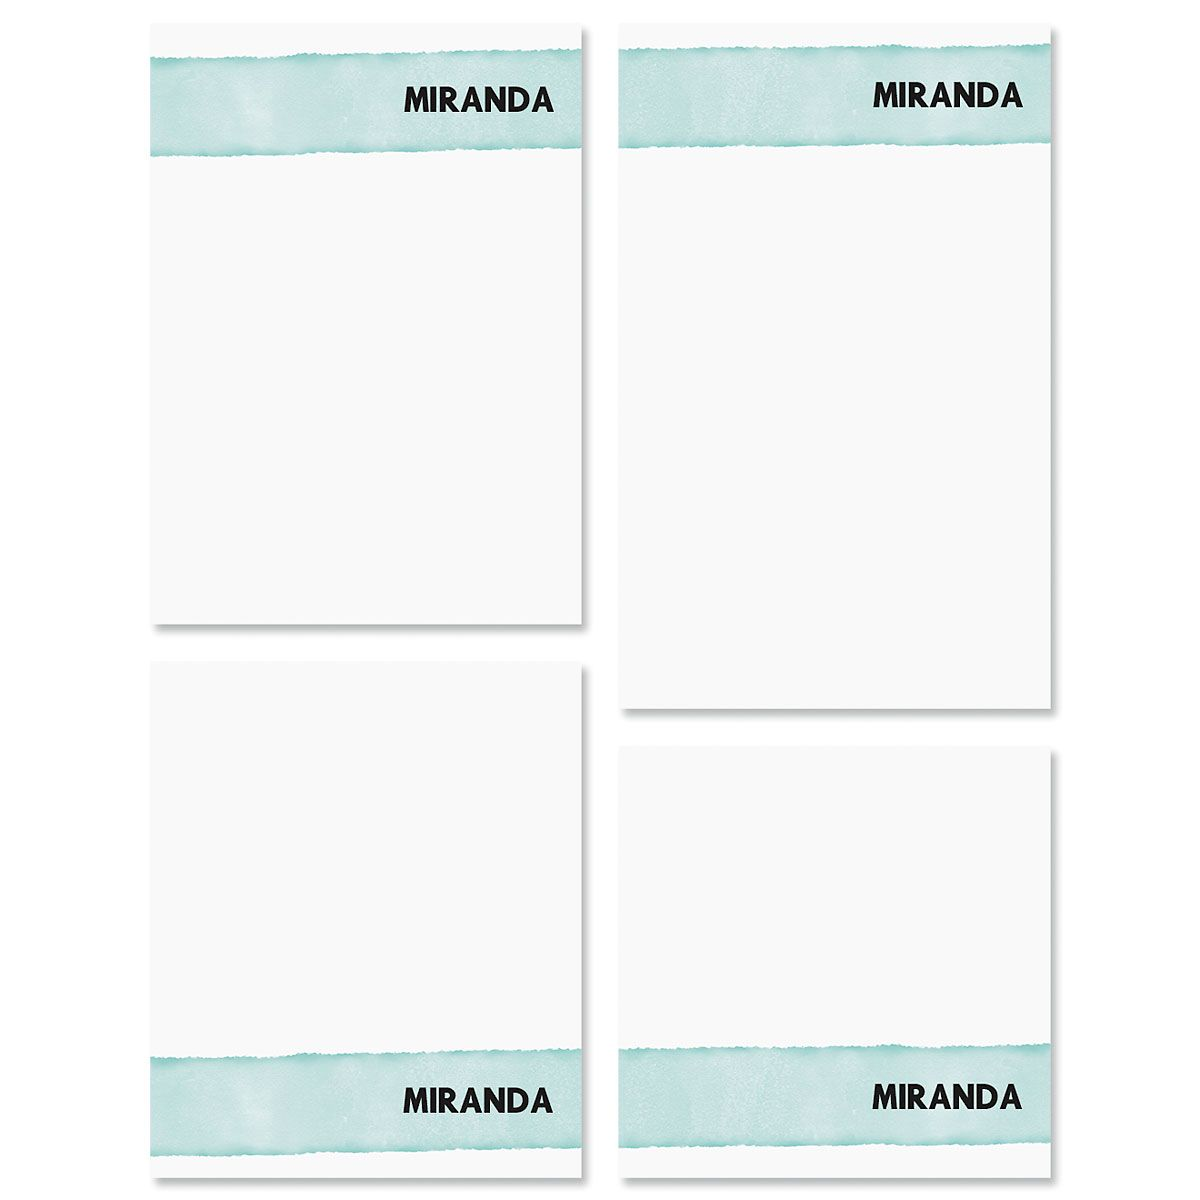 Watercolor Wash Note Pad Sets